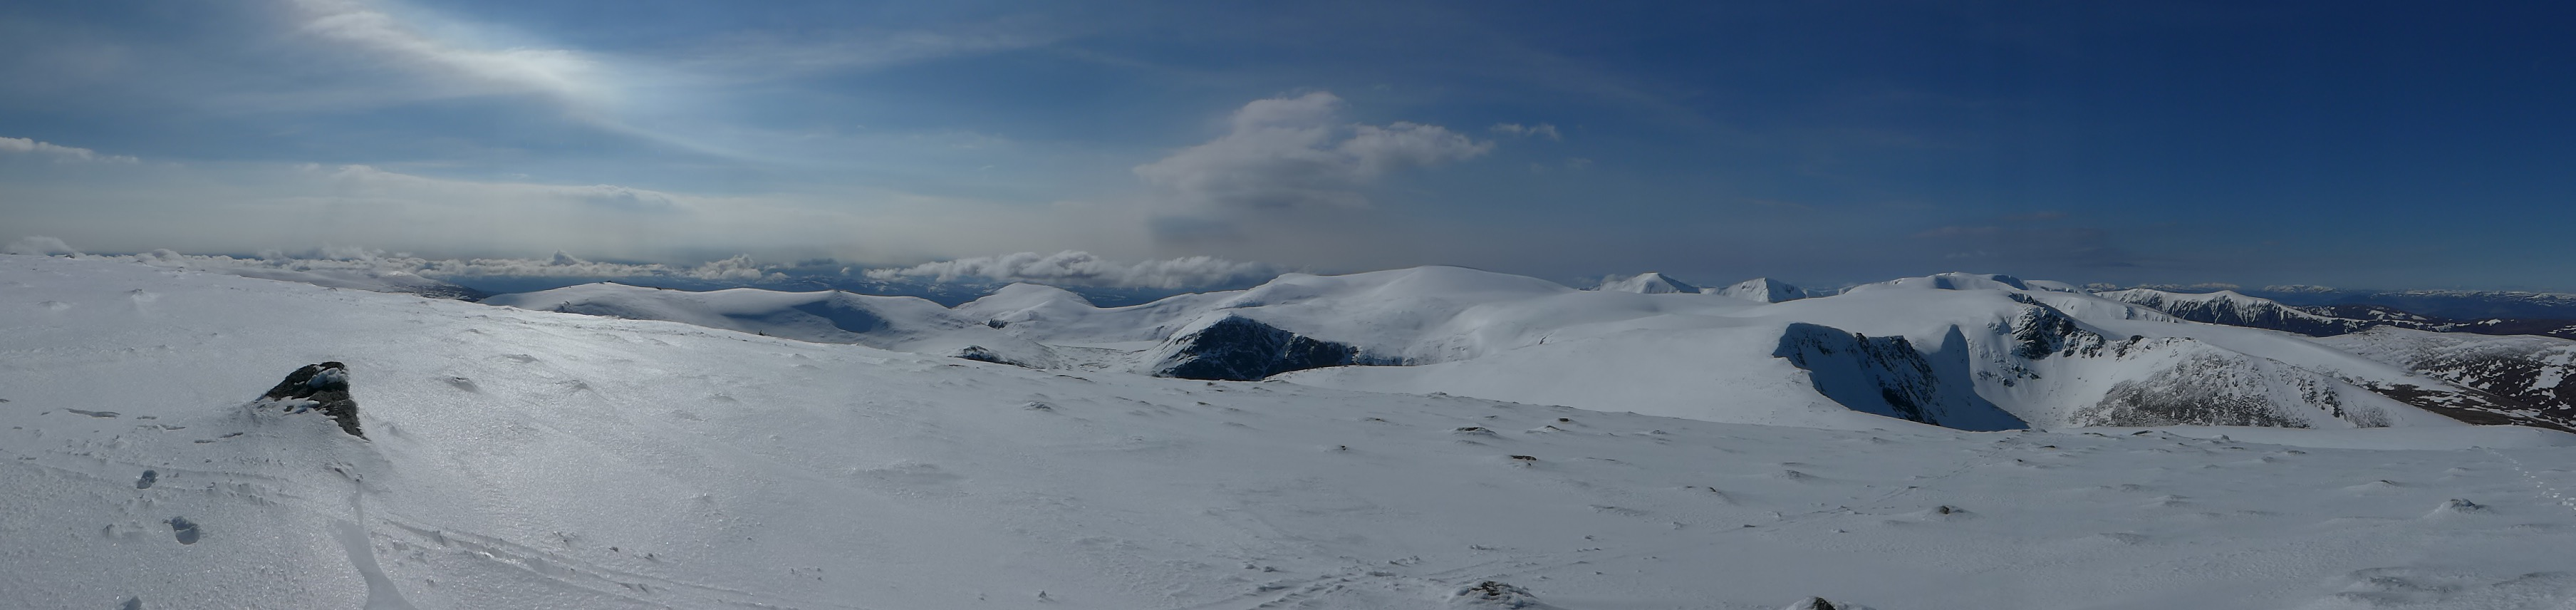 Cairngorm plateau panorama from Cairngorm summit